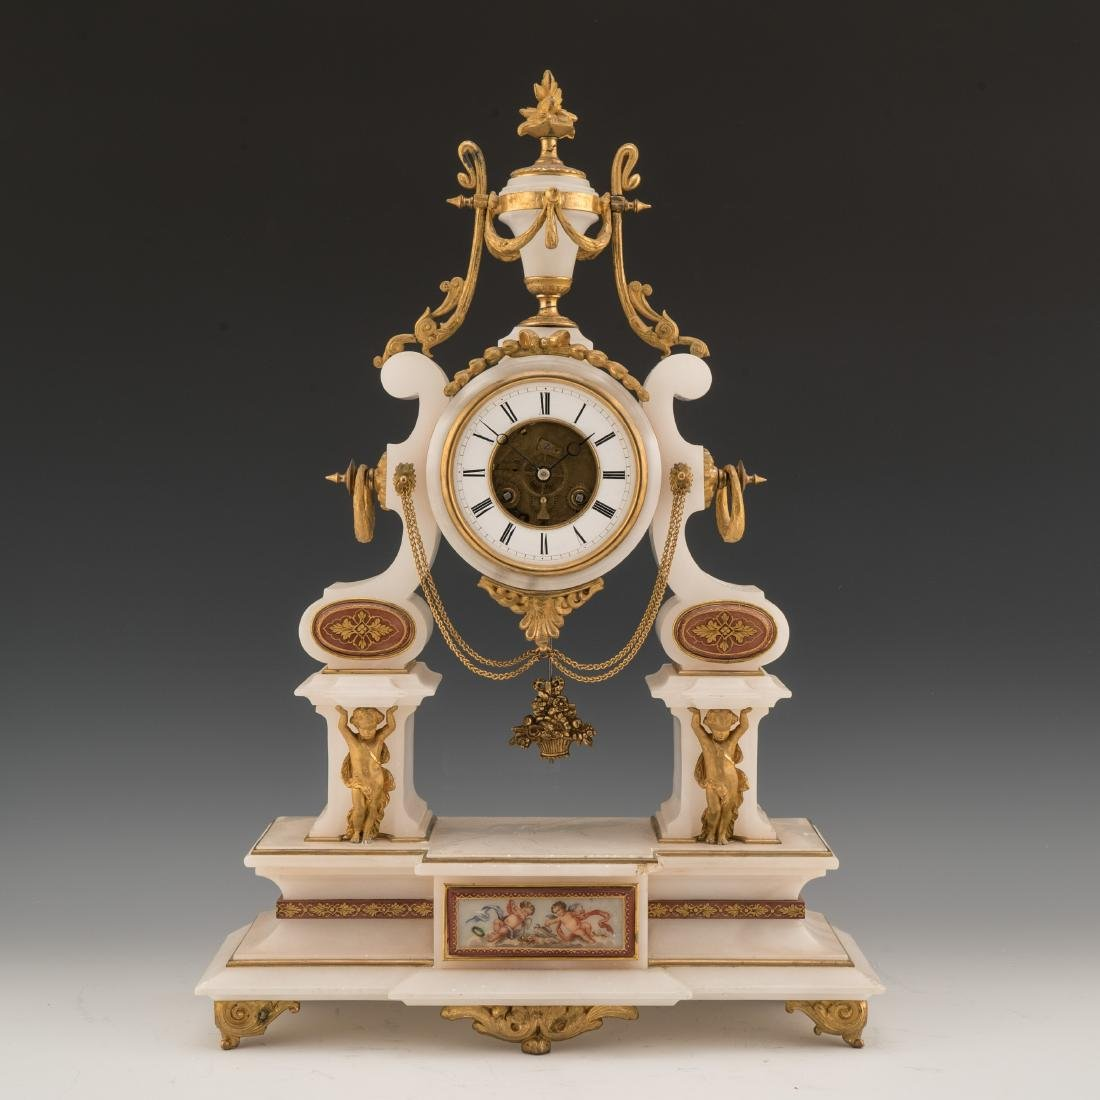 19TH CENTURY LOUIS XVI-STYLE GILT BRONZE AND MARBLE